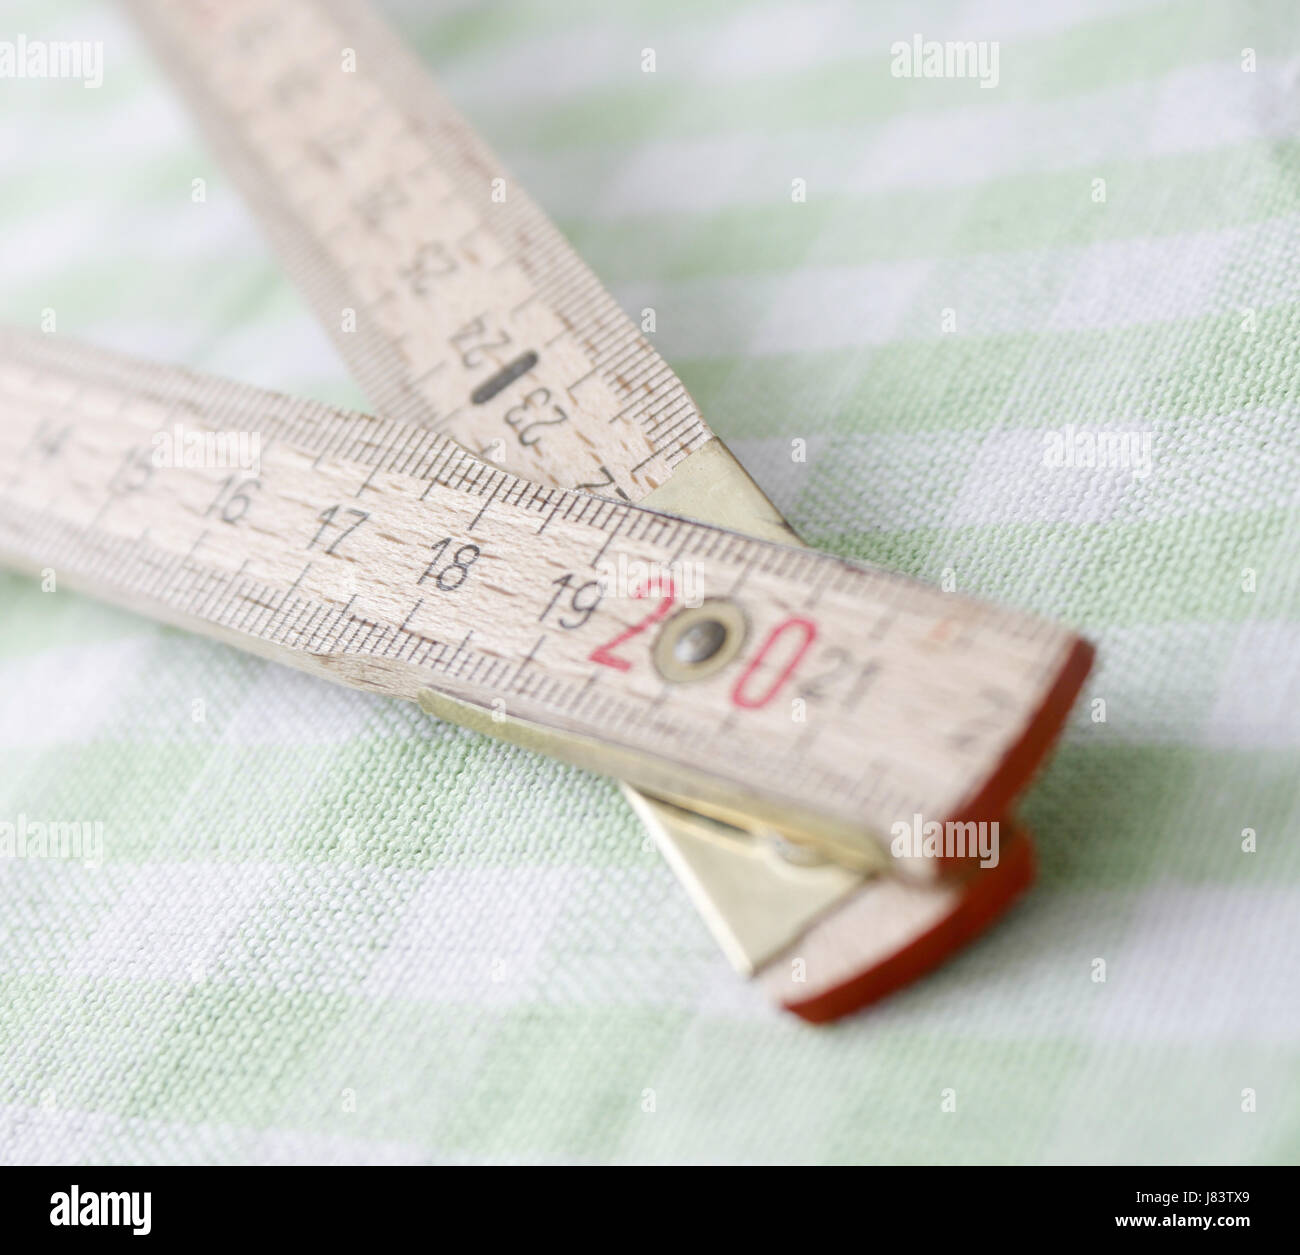 tool ruler hobby wooden centimeter carpenter measures carpenters measurements - Stock Image